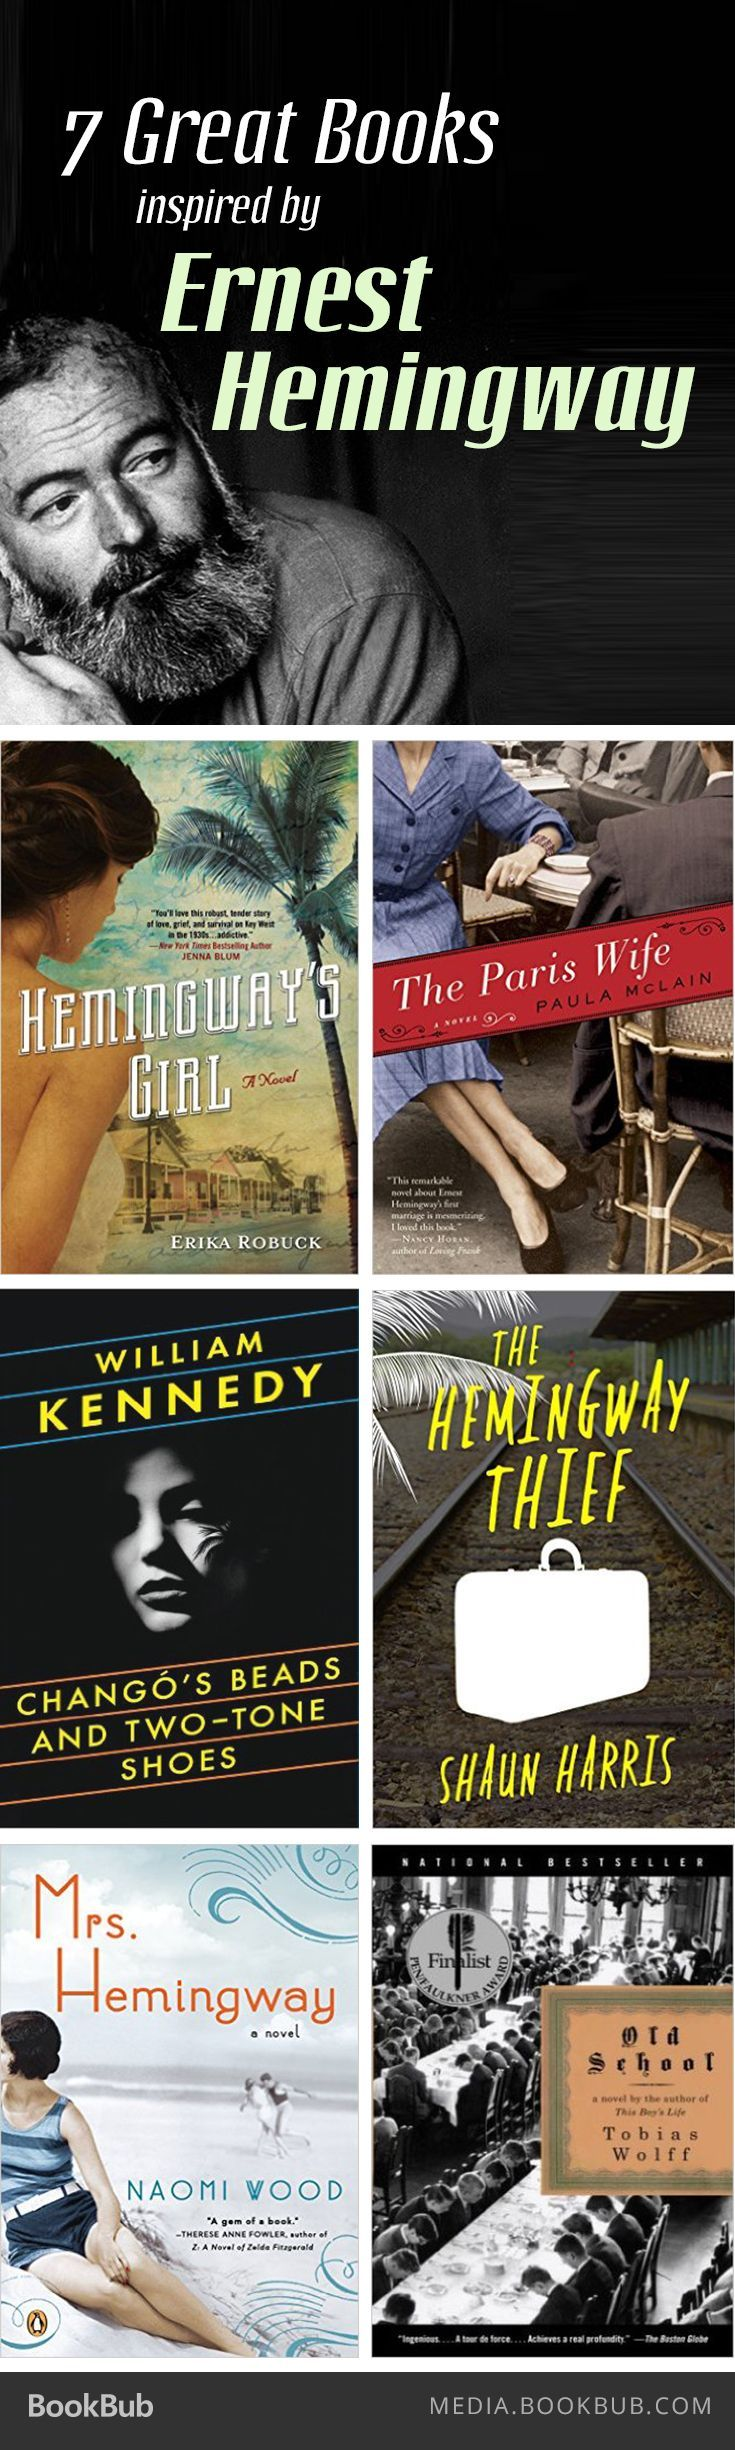 7 great books inspired by Ernest Hemingway.